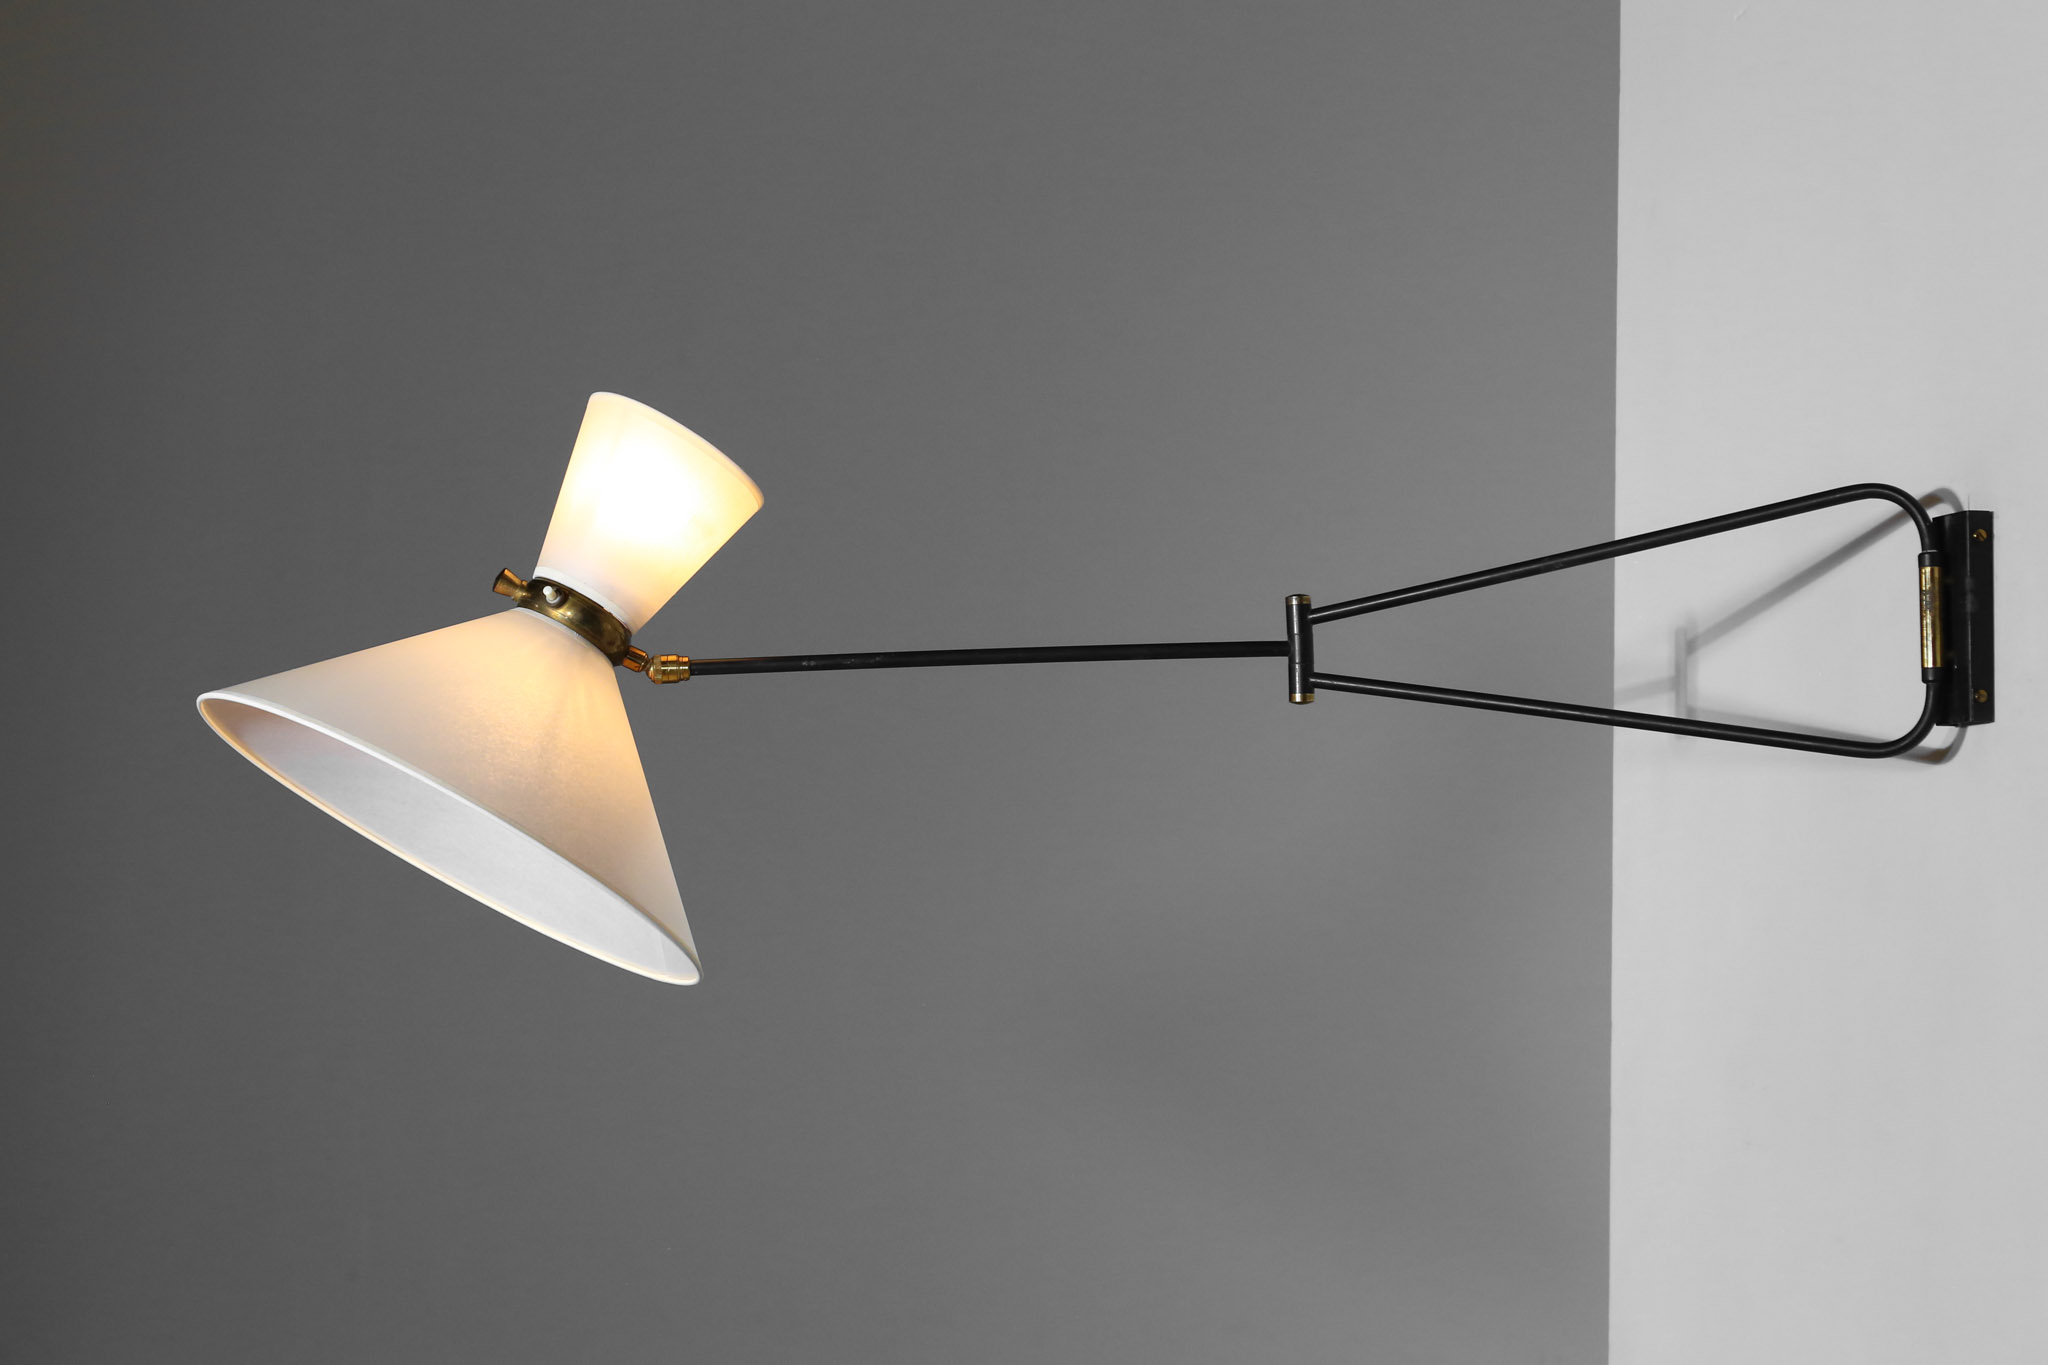 Vintage Wall Light From Lunel Mid Century Lamp 1960s Danke Galerie